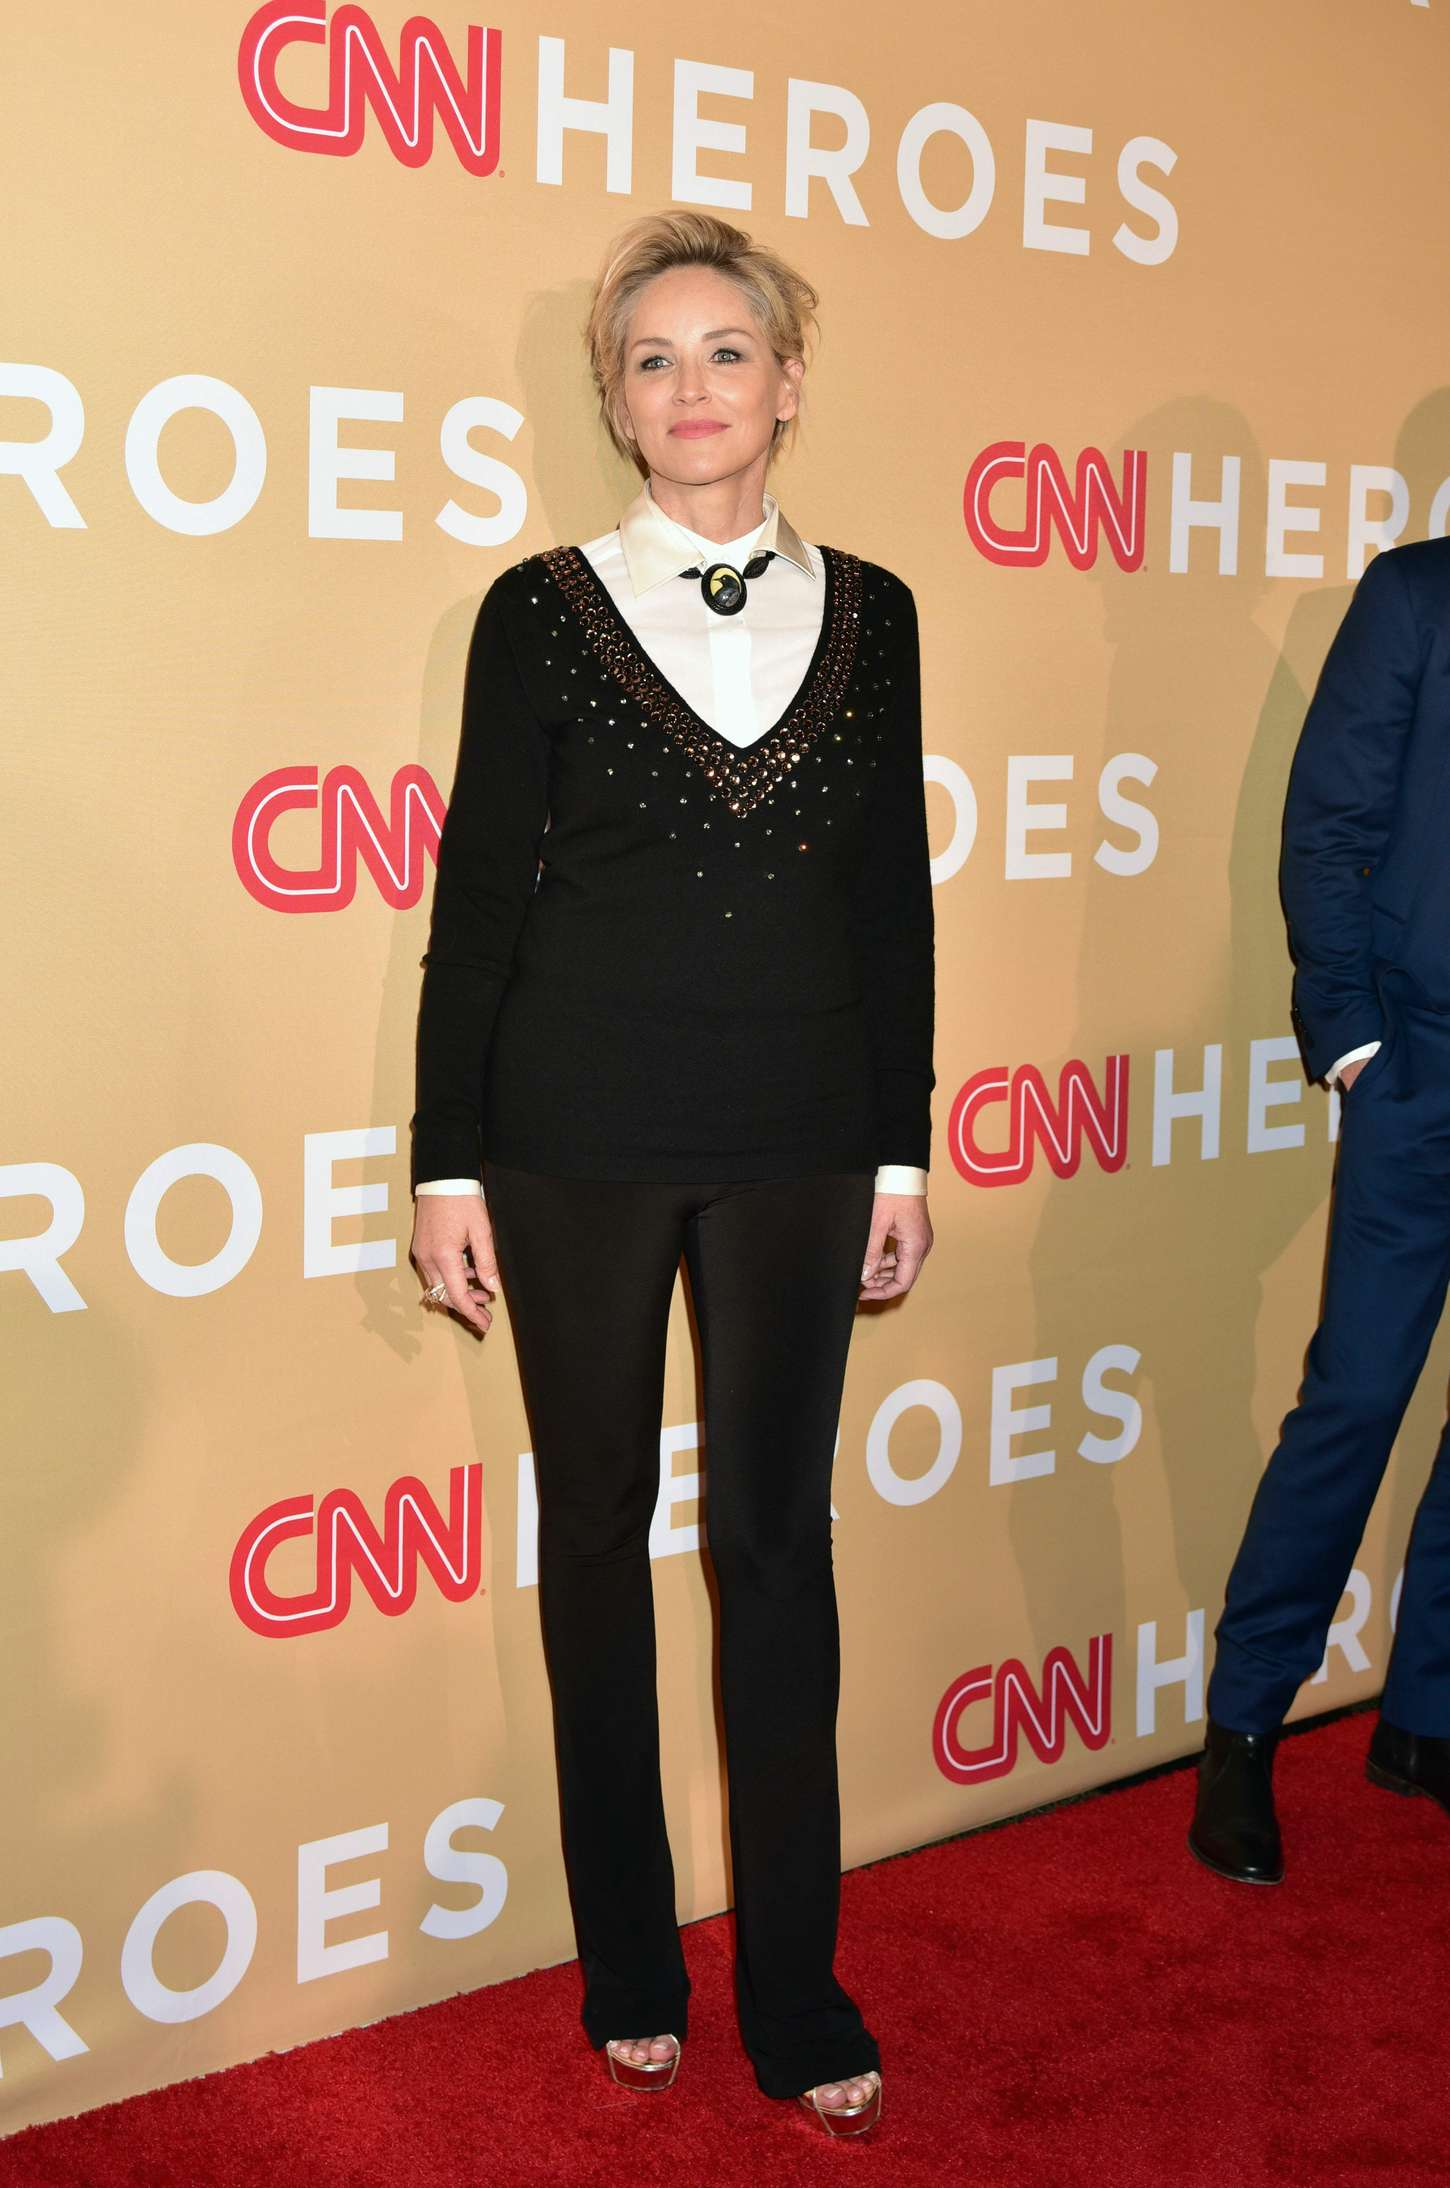 Sharon Stone CNN Heroes in New York